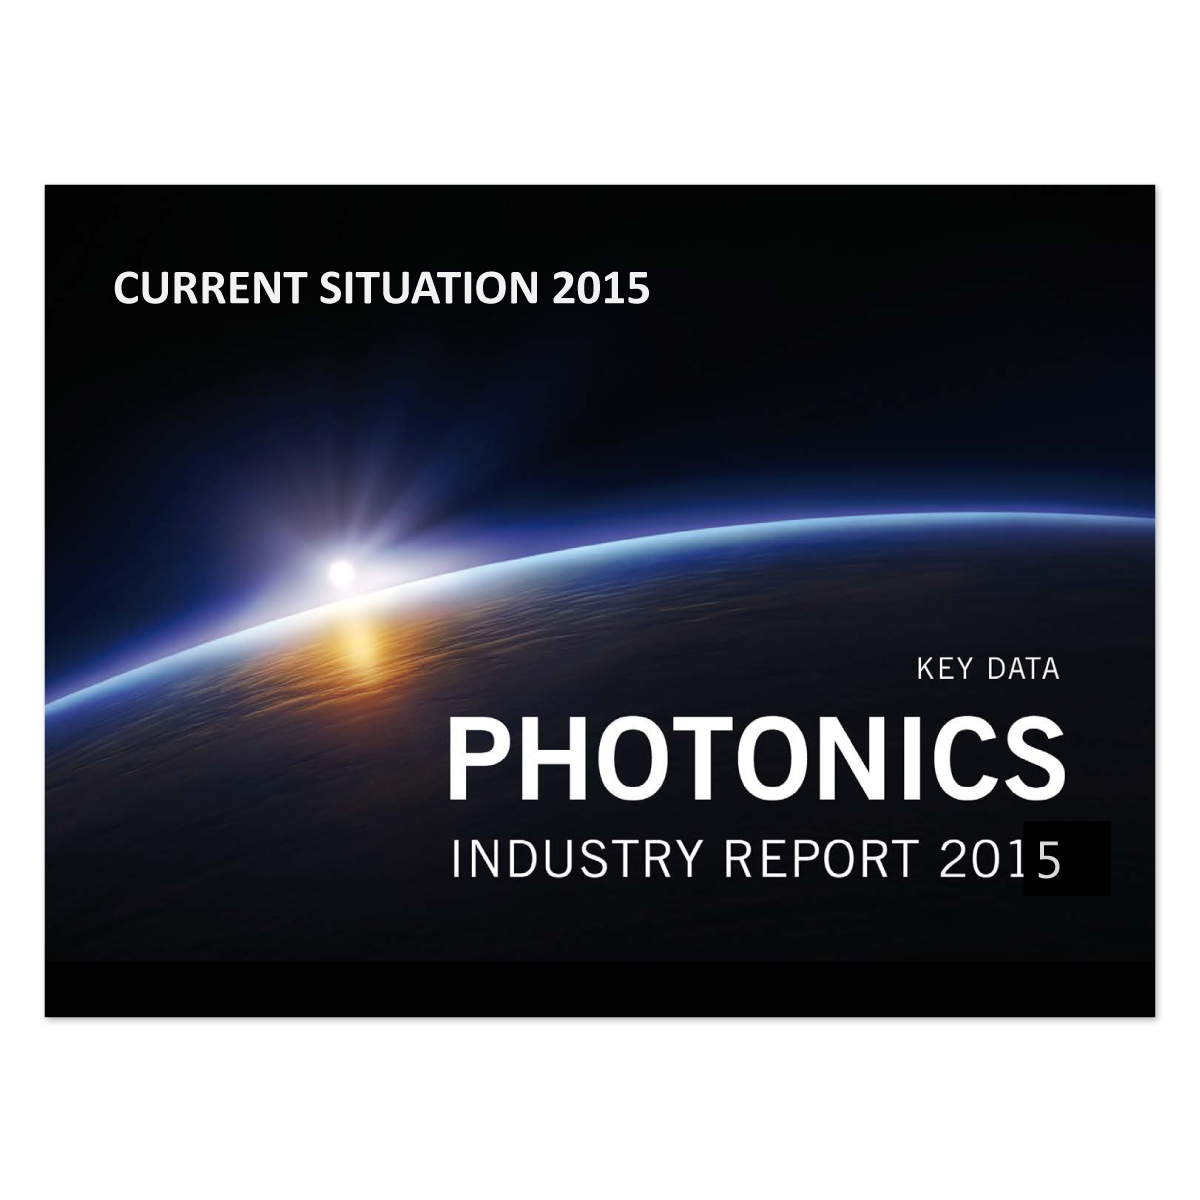 Photonics Industry Report 2015